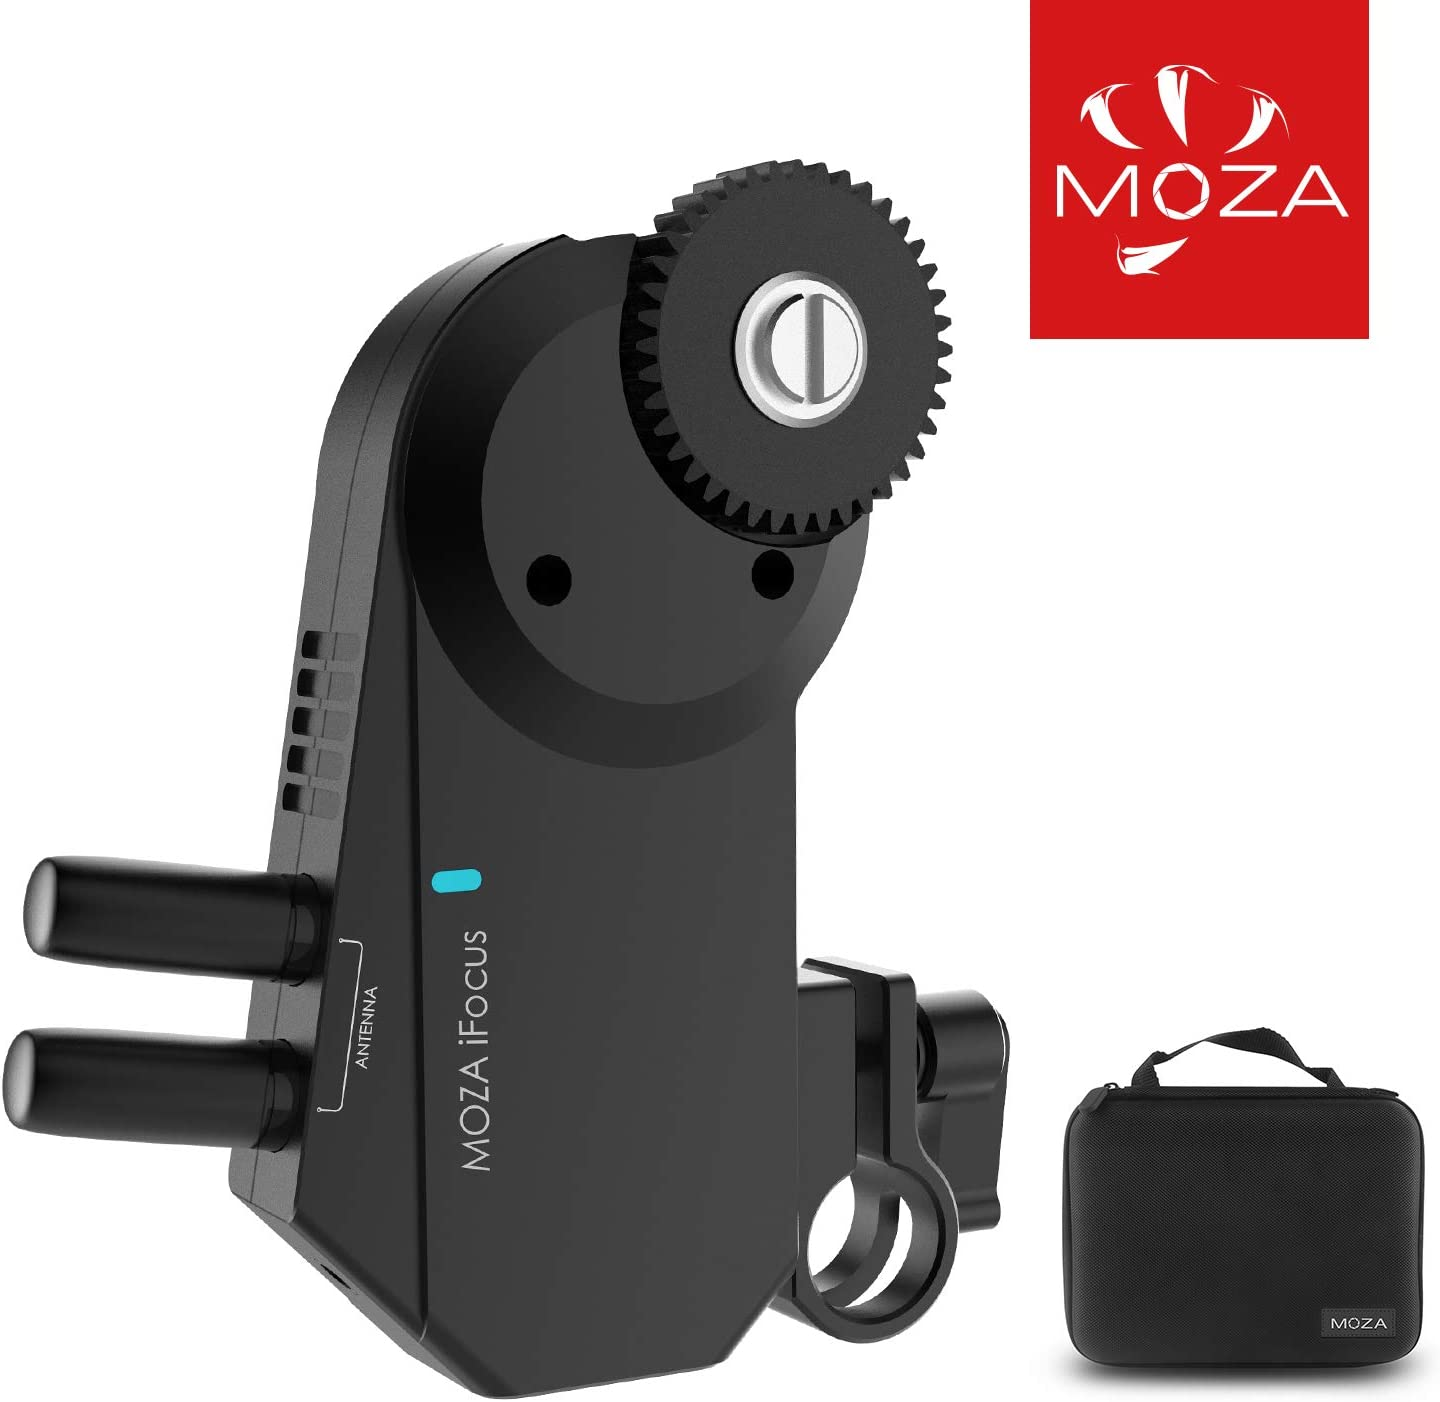 MOZA iFocus Wireless Follow Focus Motor Focus Controller for MOZA Air 2 MOZA AirCross 2 Gimbal Stabilizer Wireless DSLR Camera Lens Control System(iFocus)